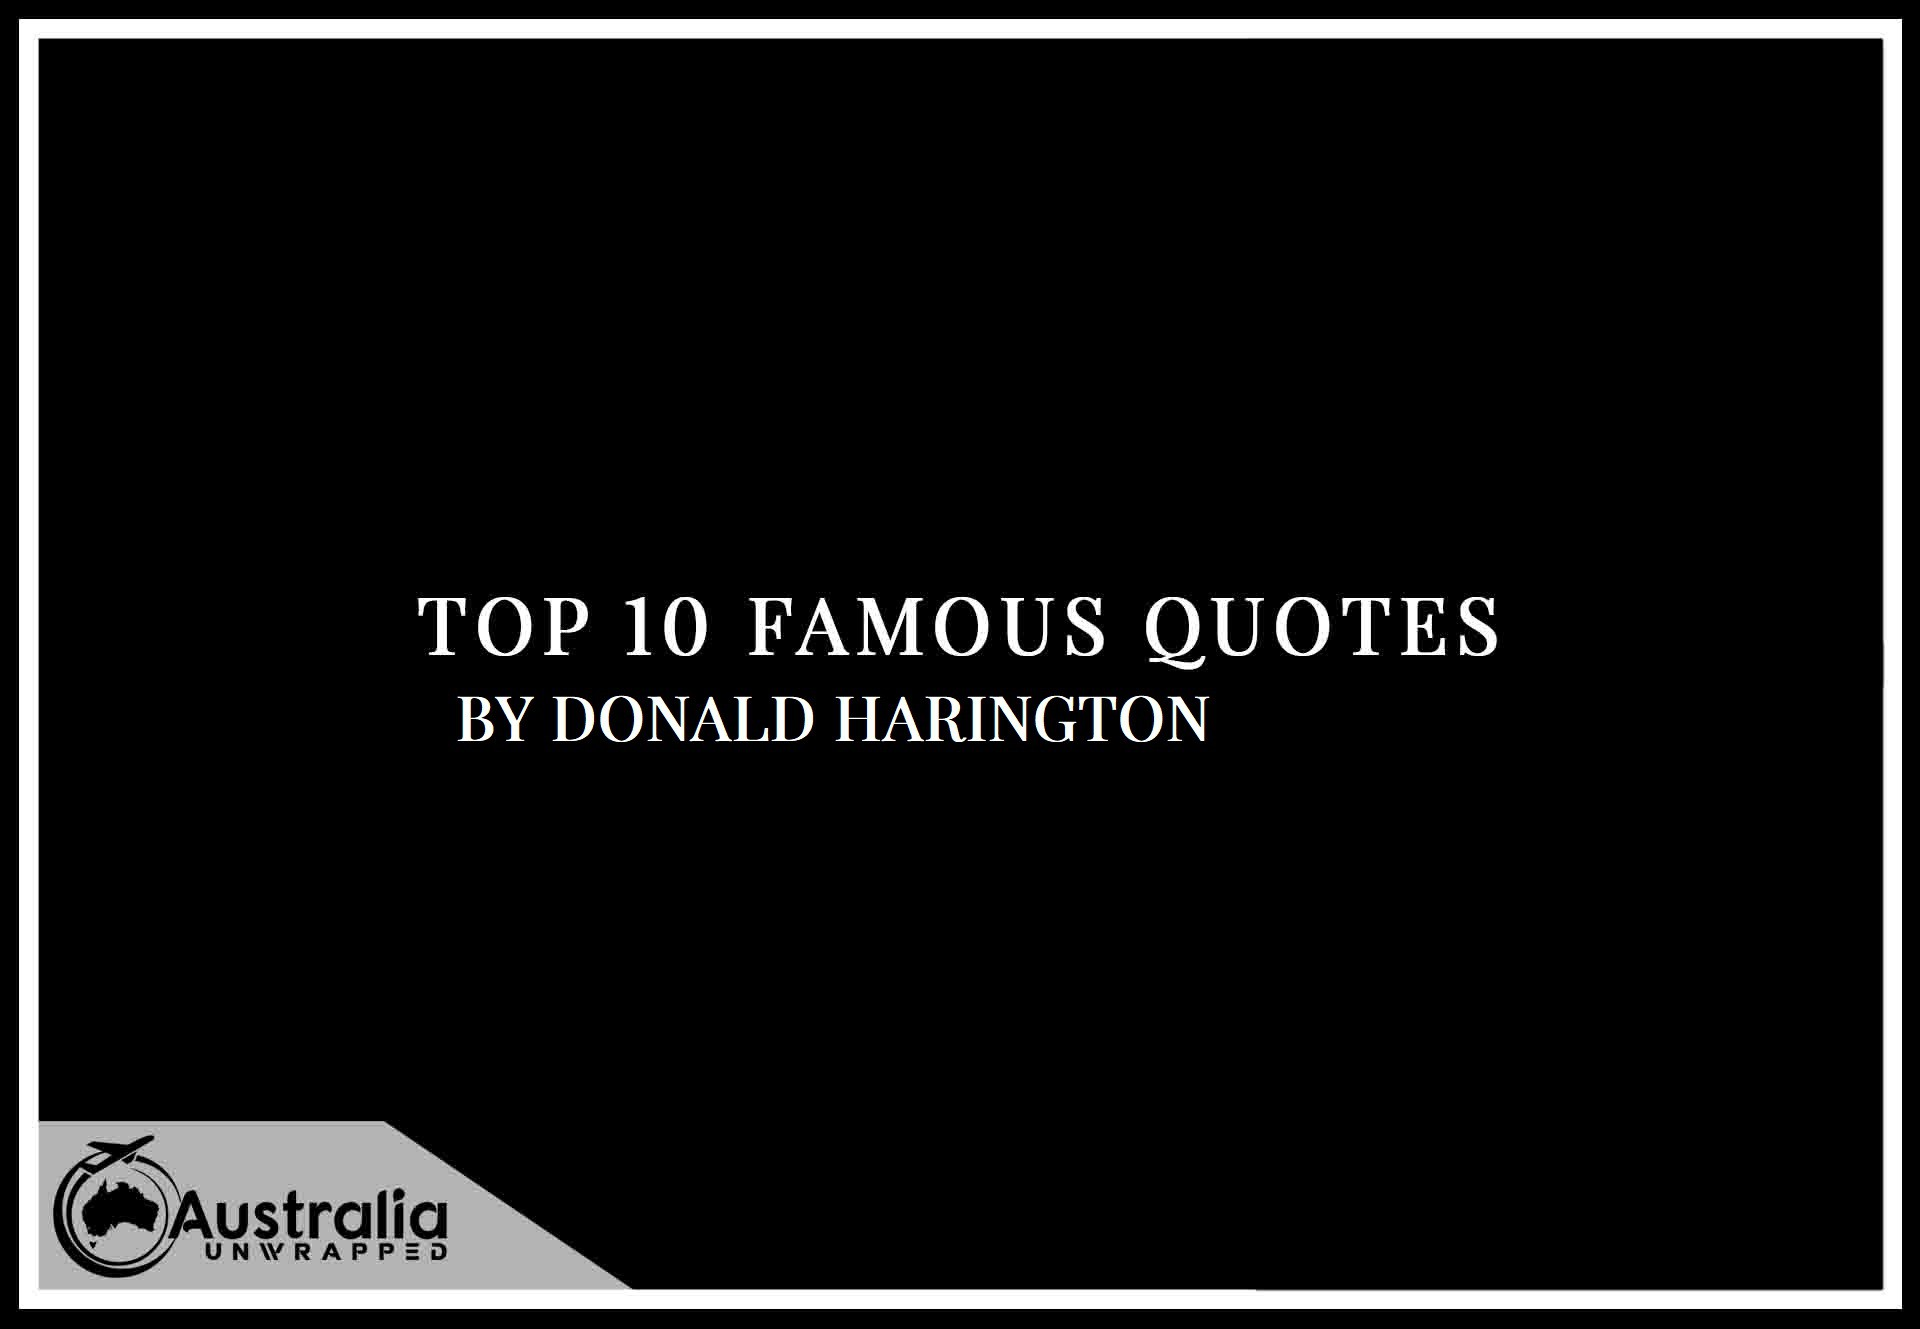 Top 10 Famous Quotes by Author Donald Harington